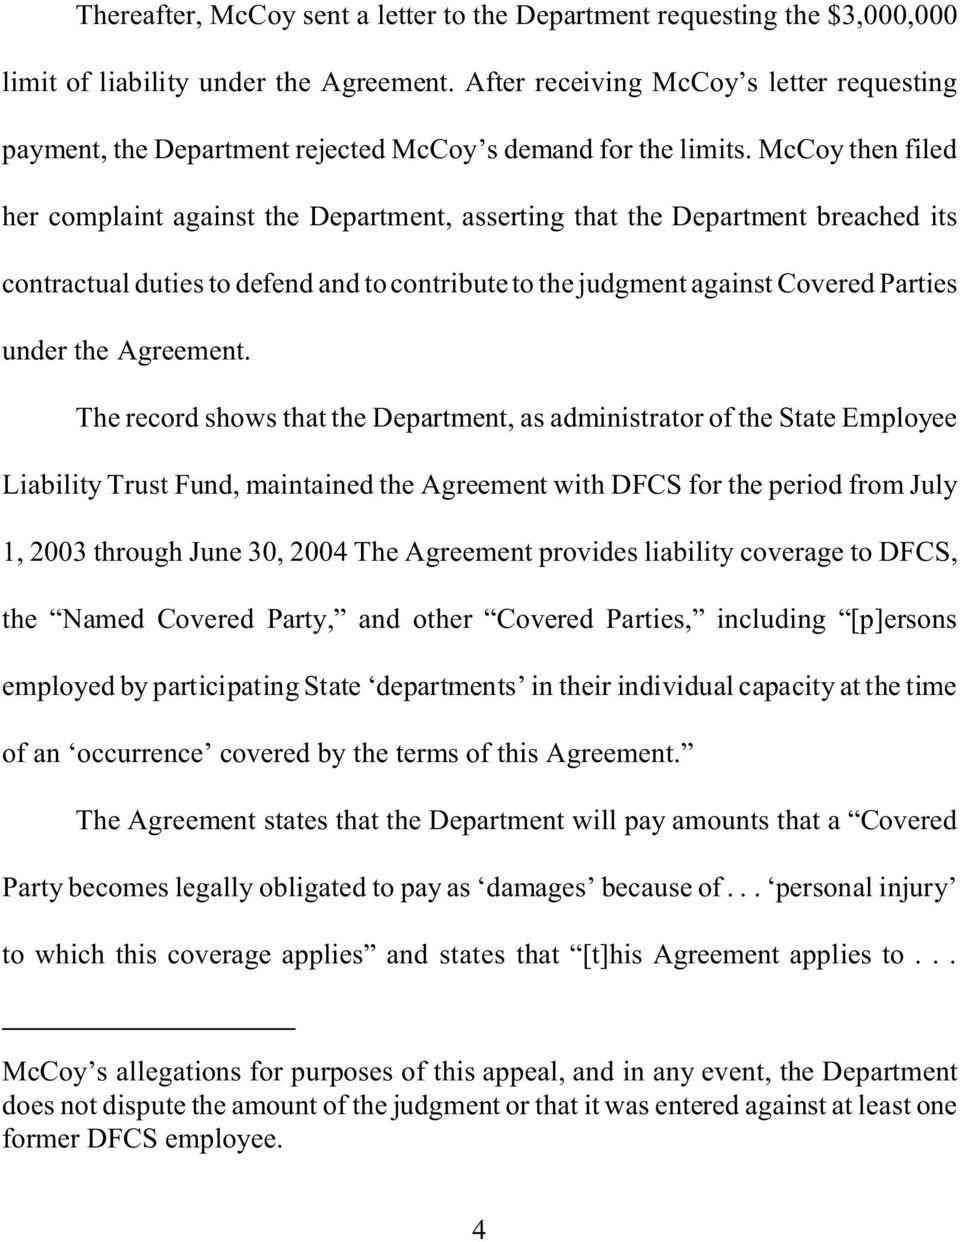 McCoy then filed her complaint against the Department, asserting that the Department breached its contractual duties to defend and to contribute to the judgment against Covered Parties under the